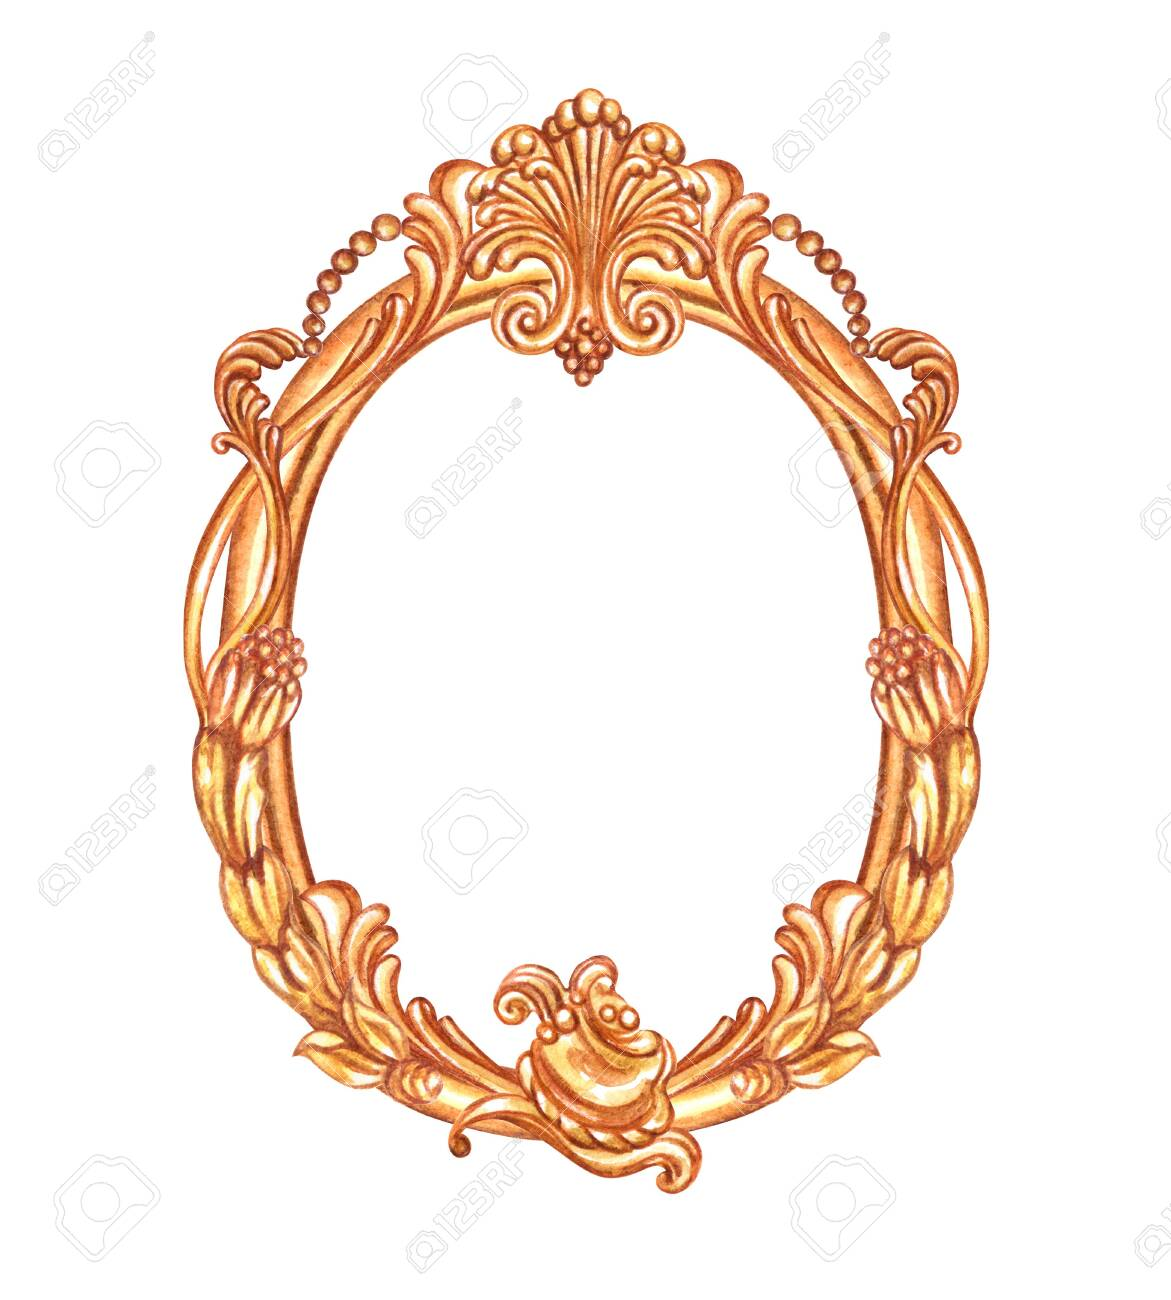 Gold oval frame with Baroque pattern, watercolor painting on white background, isolated. - 146520112